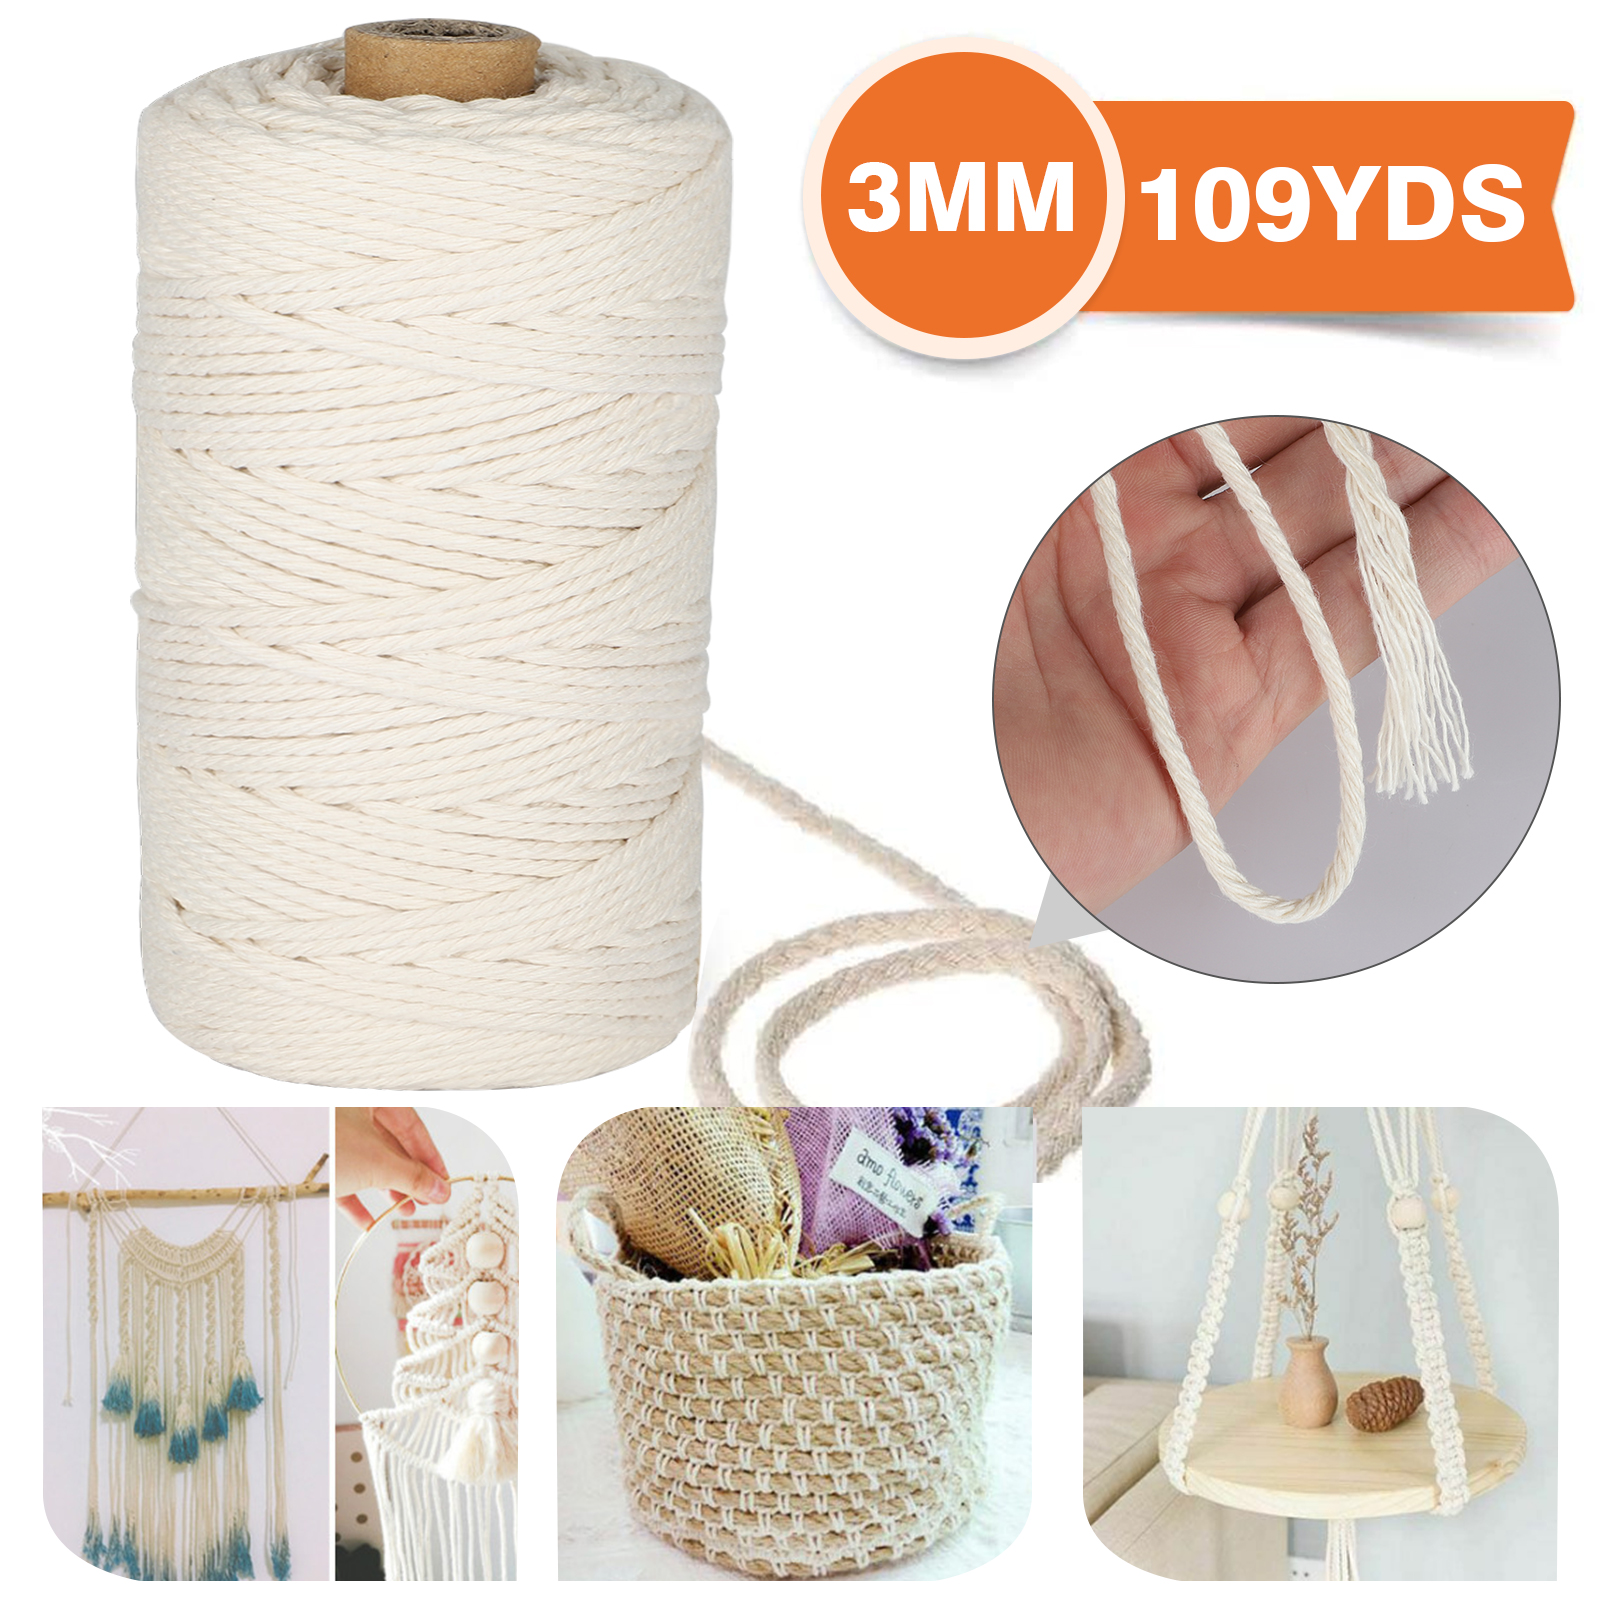 3mm x 109Yards Macrame Cord Thick Natural Cotton Macrame Rope Knitting Plant Hanger 4 Strand Twisted Cotton Cord Rope for Soft Macrame Natural Color Handmade Wall Hanging Decorative Project Craft